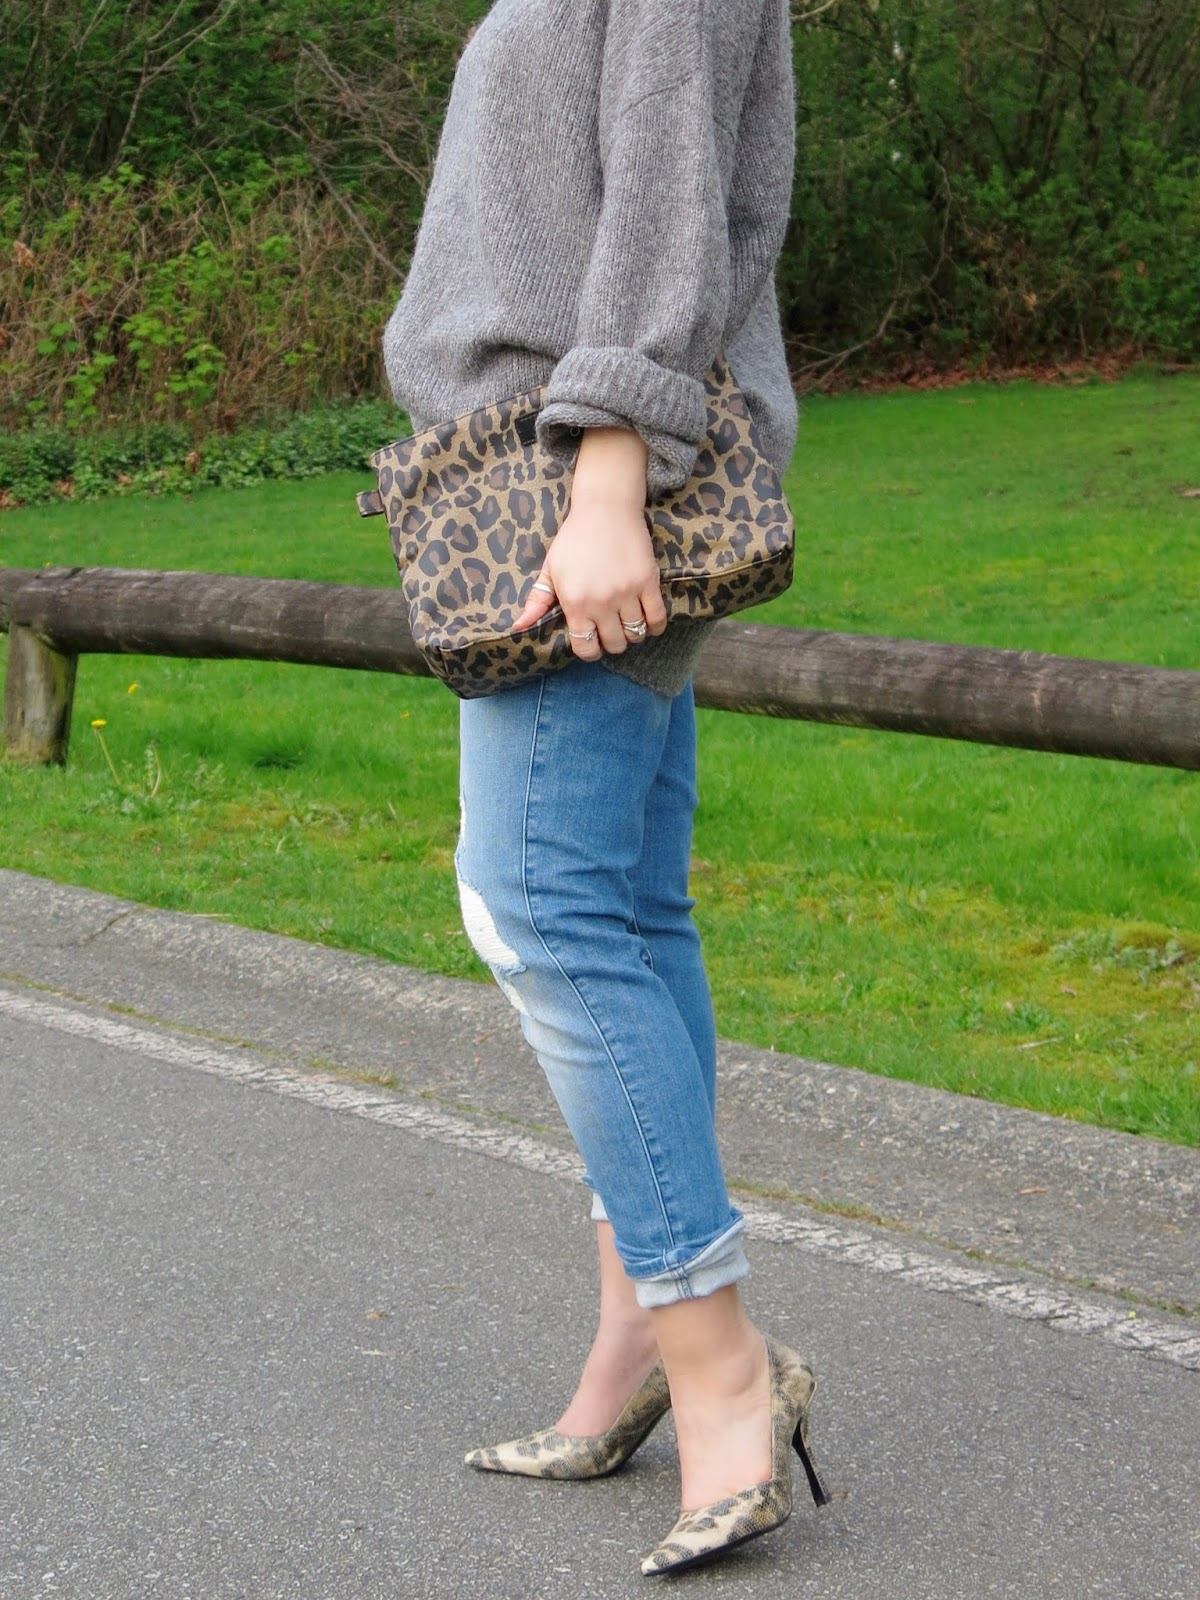 oversized grey sweater, boyfriend jeans, leopard clutch, and pumps